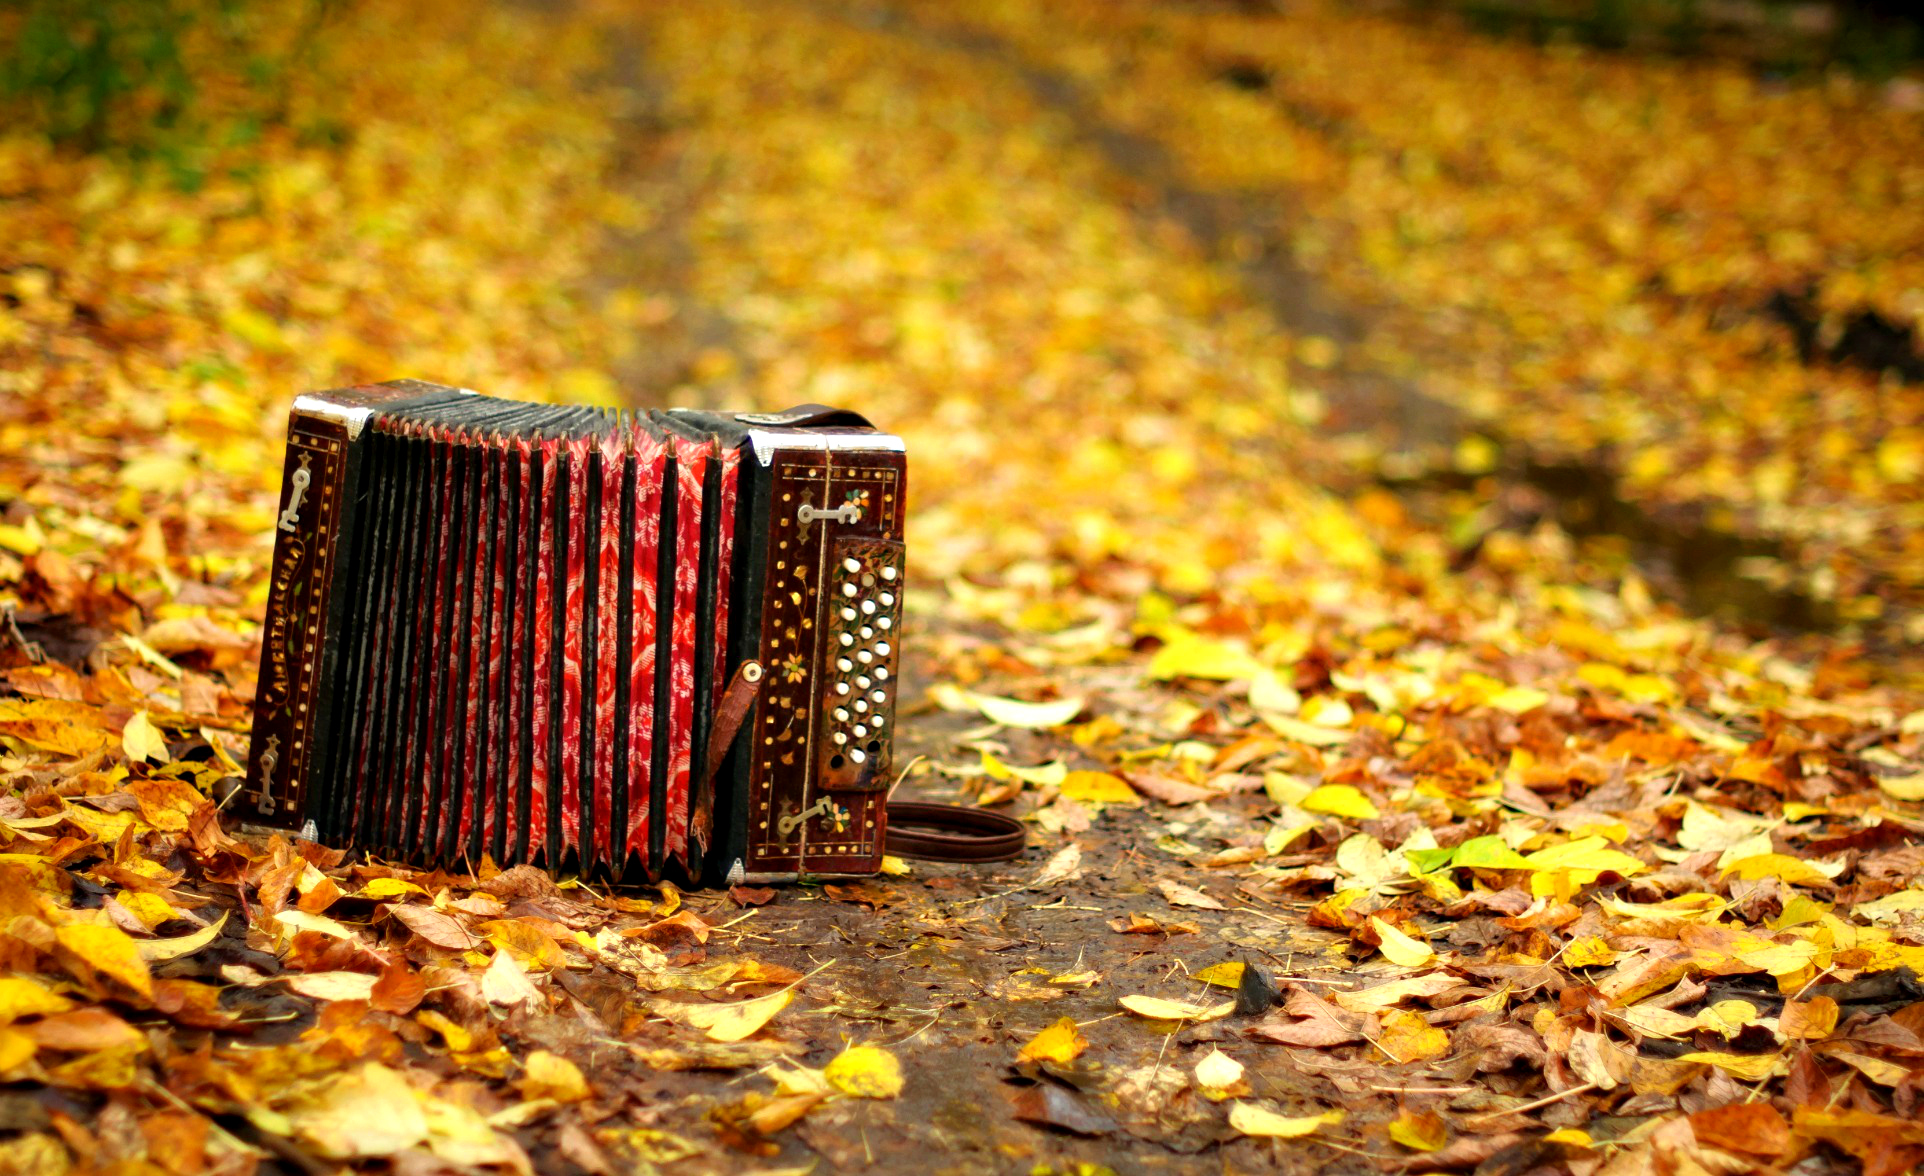 Hd Wallpaper Fall Leaf Change 1 Accordion Hd Wallpapers Backgrounds Wallpaper Abyss